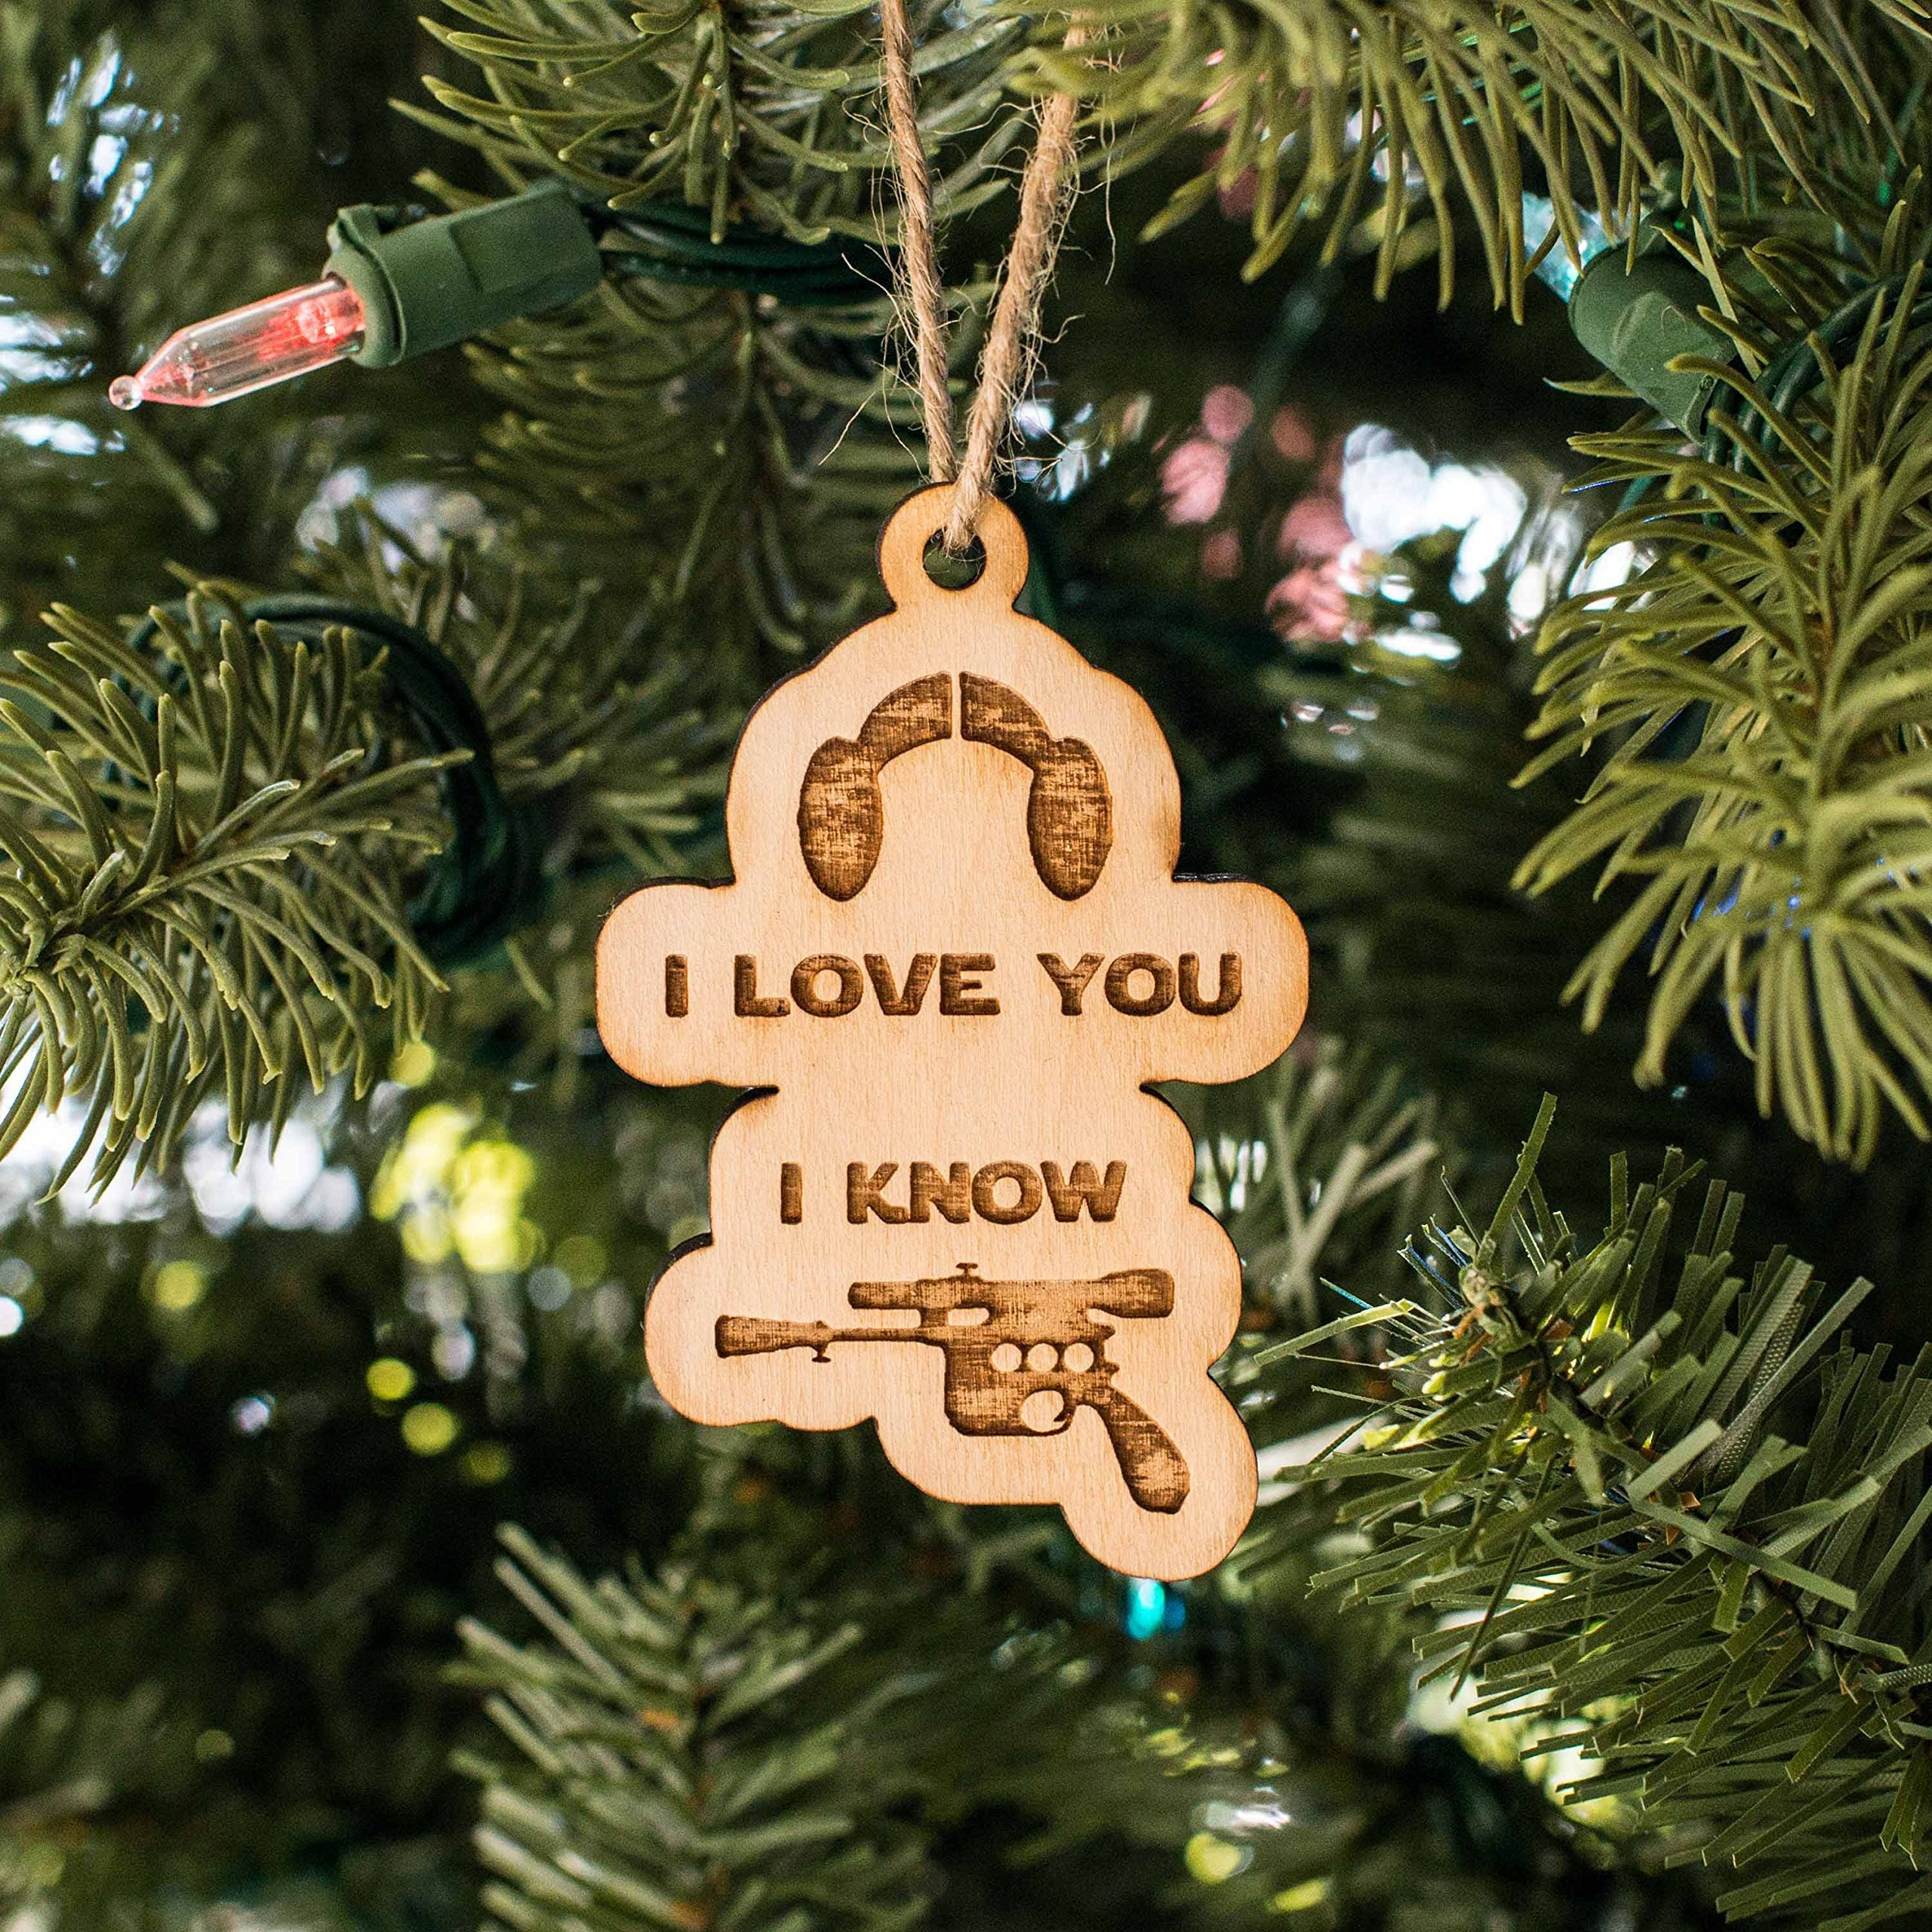 Ornament - I Love You I Know - Raw Wood 3x2in by Hip Flask Plus (Image #1)